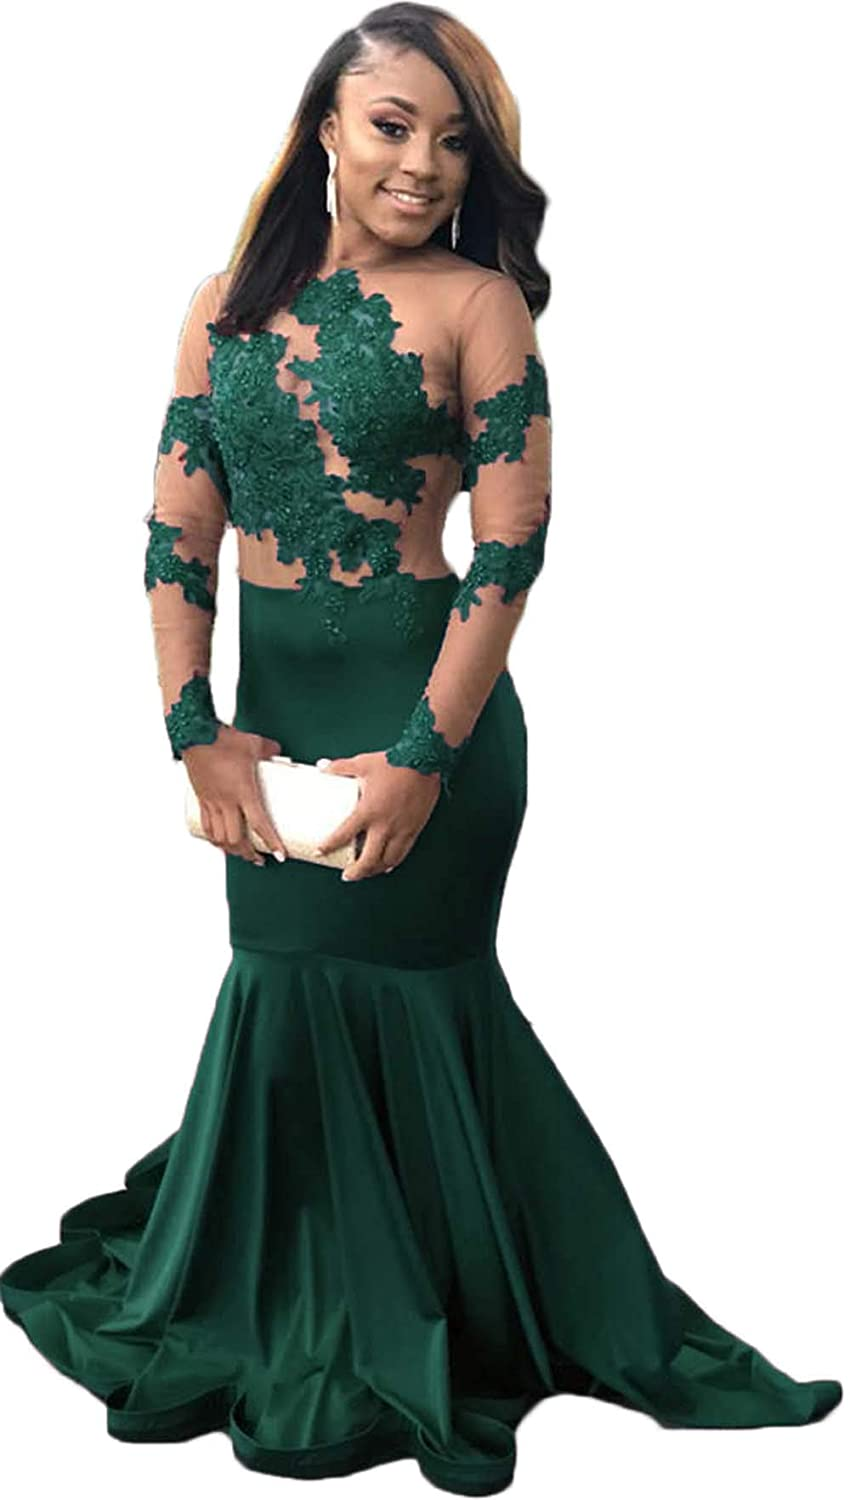 Wgreen Ri Yun Sexy Illusions Long Sleeve Lace Prom Dresses Mermaid 2019 Beaded Appliques Formal Evening Ball Gowns